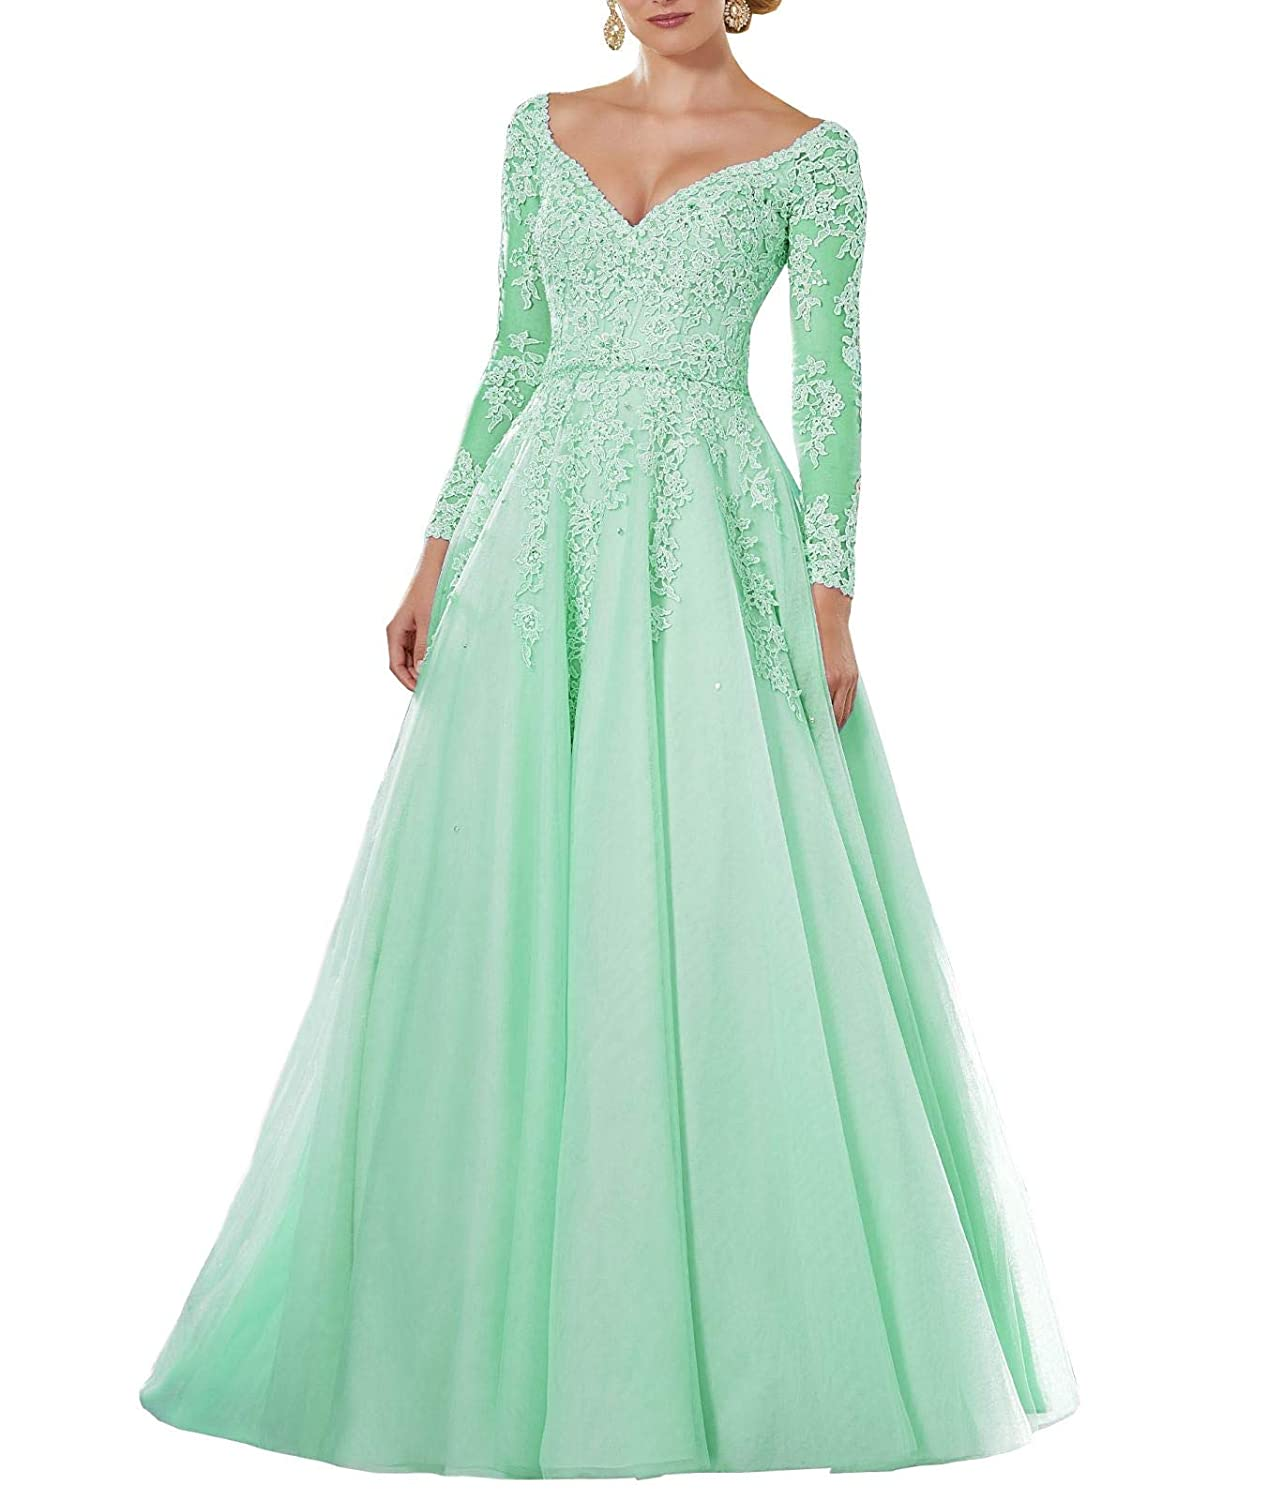 Green Wanshaqin Women's Lace Appliqued VNeck Formal Evening Gown Sleeves Tulle Party Dress with Empire Jewelled Waist